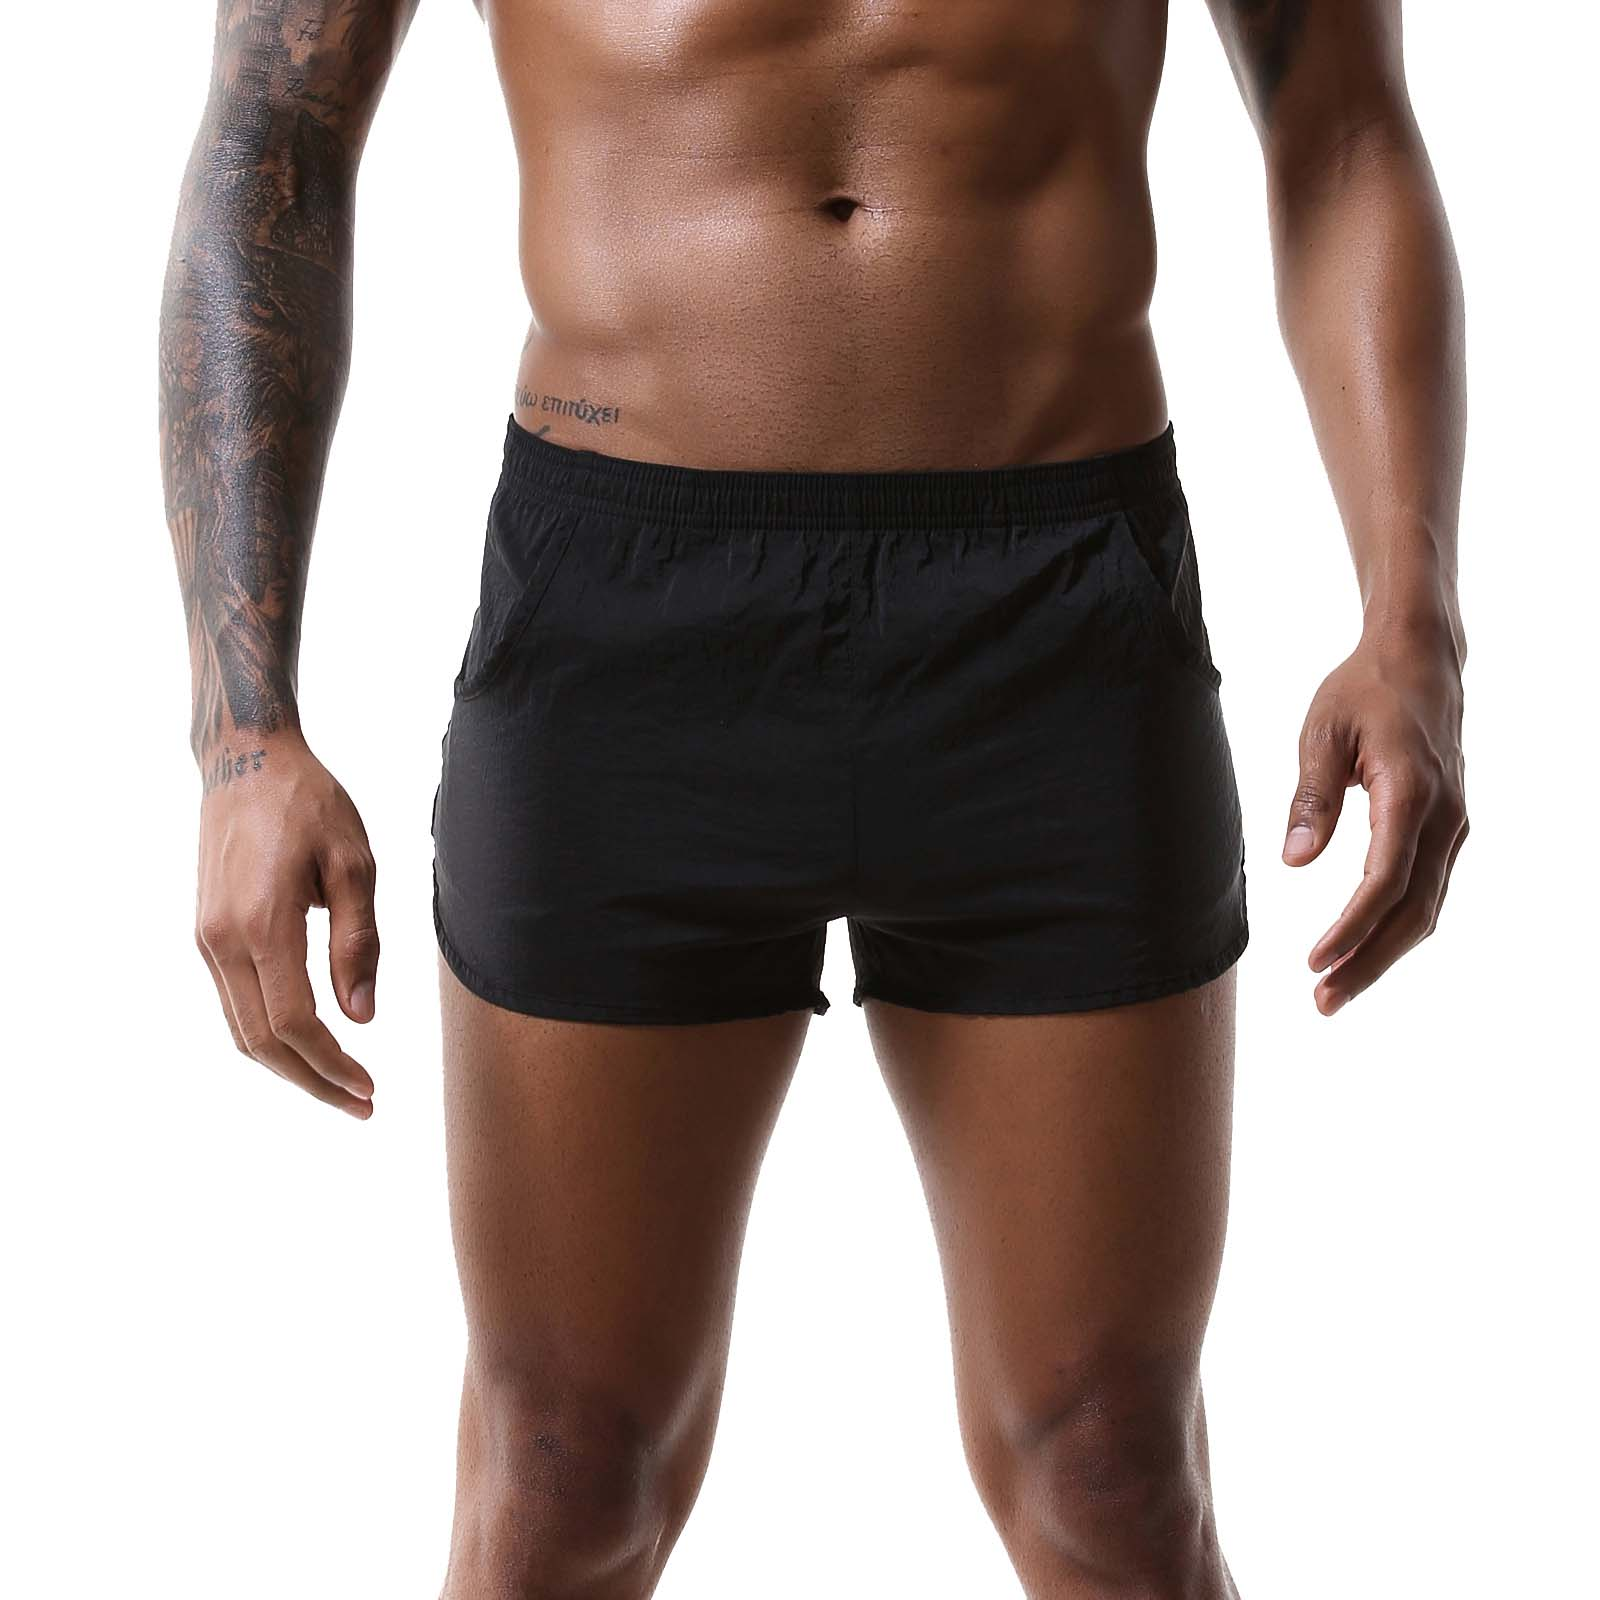 Swimwear Mens Swimsuit Solid Color Quick-drying Surfing Swimming Trunks Beachwear Low Waist Boxers Shorts with Pockets